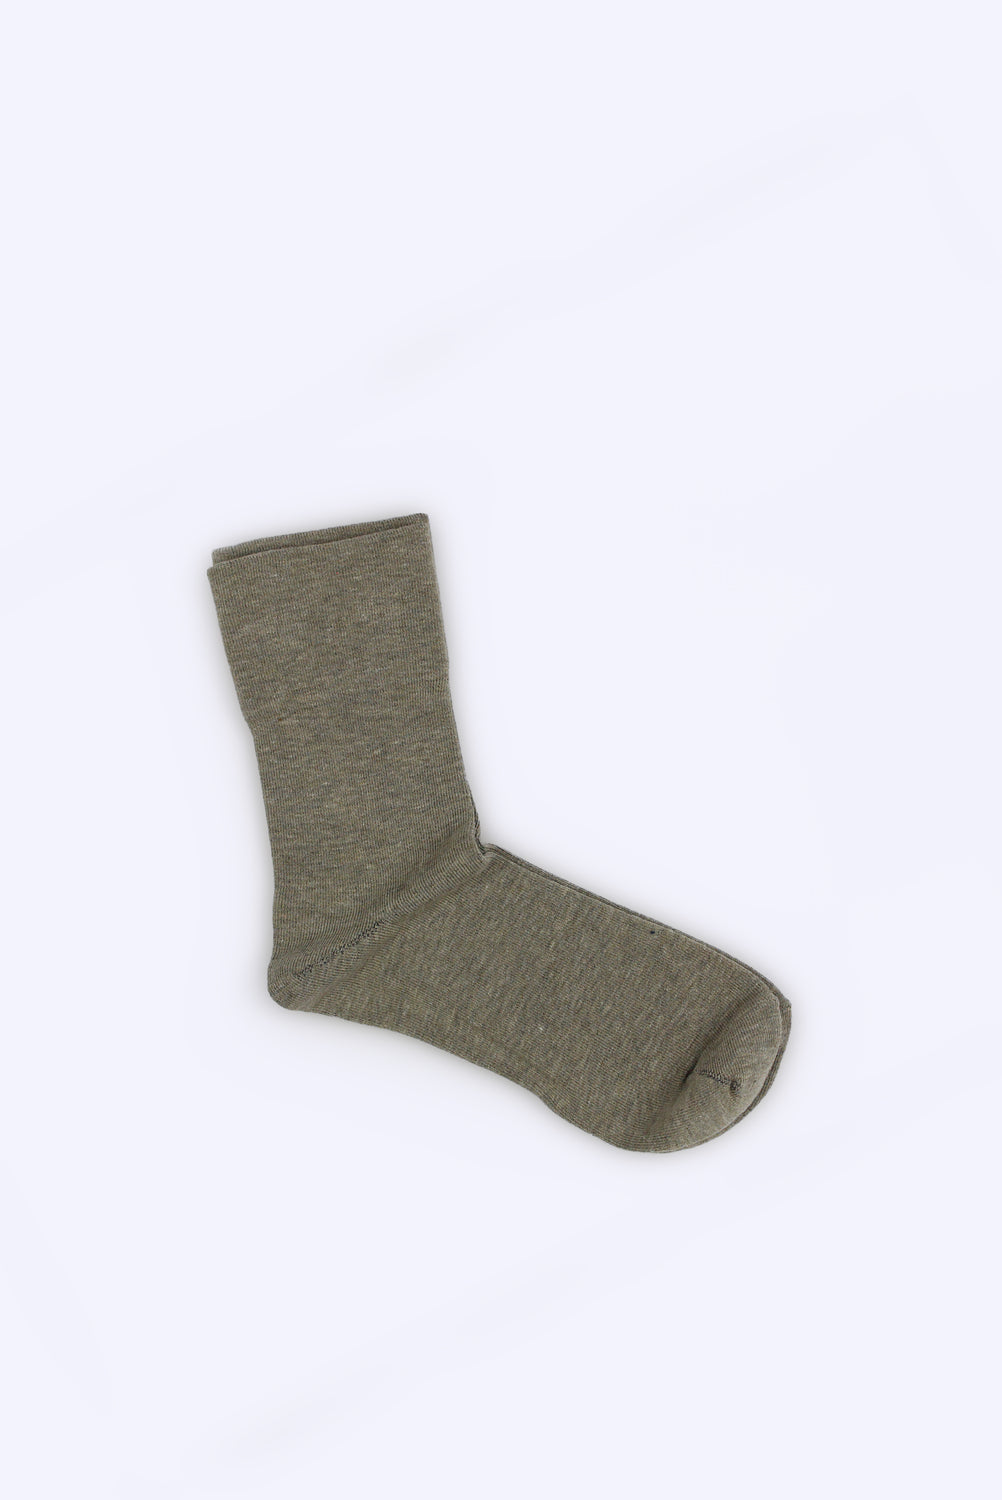 Foot Comfort Socks, Grey Beige